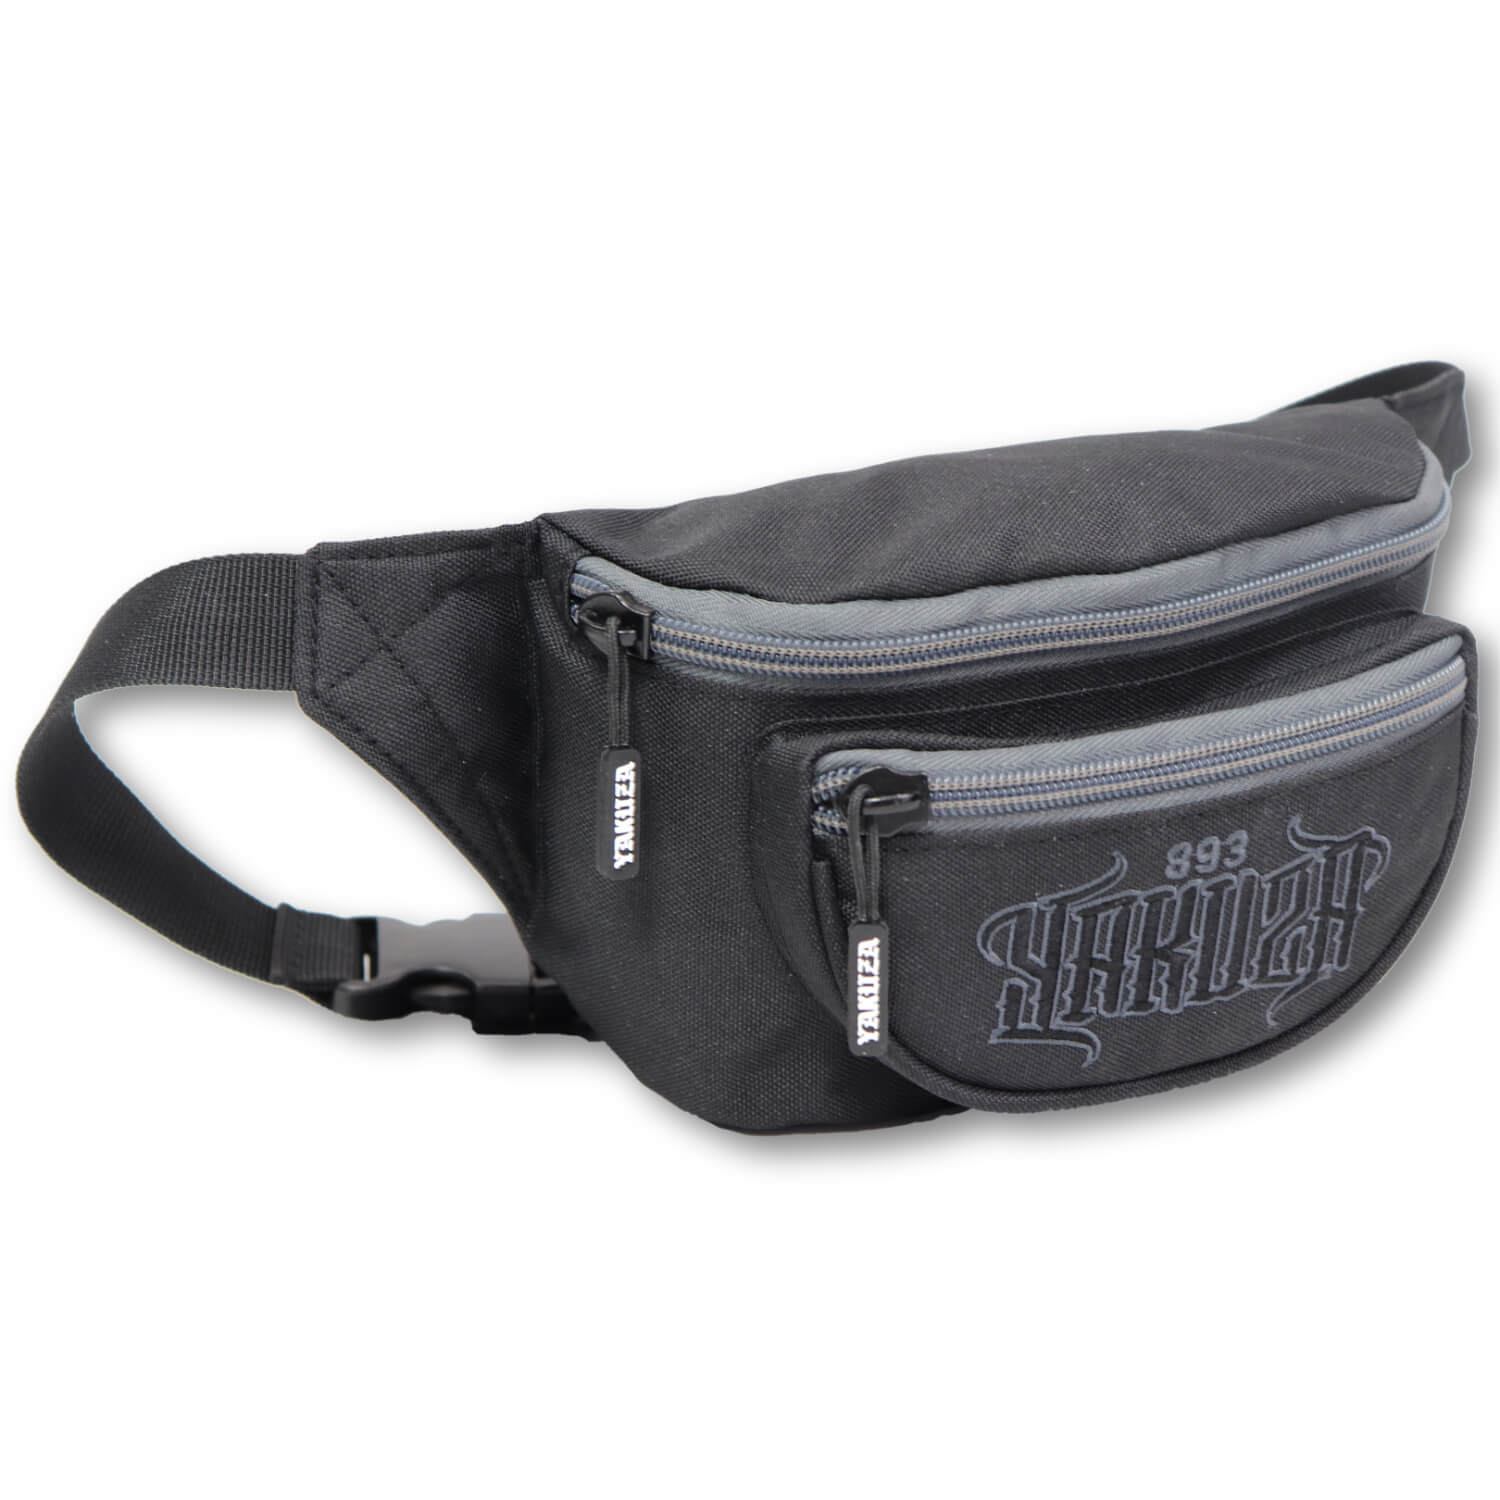 Yakuza, Verve Belt Bag, GTB16306 BLK ONE